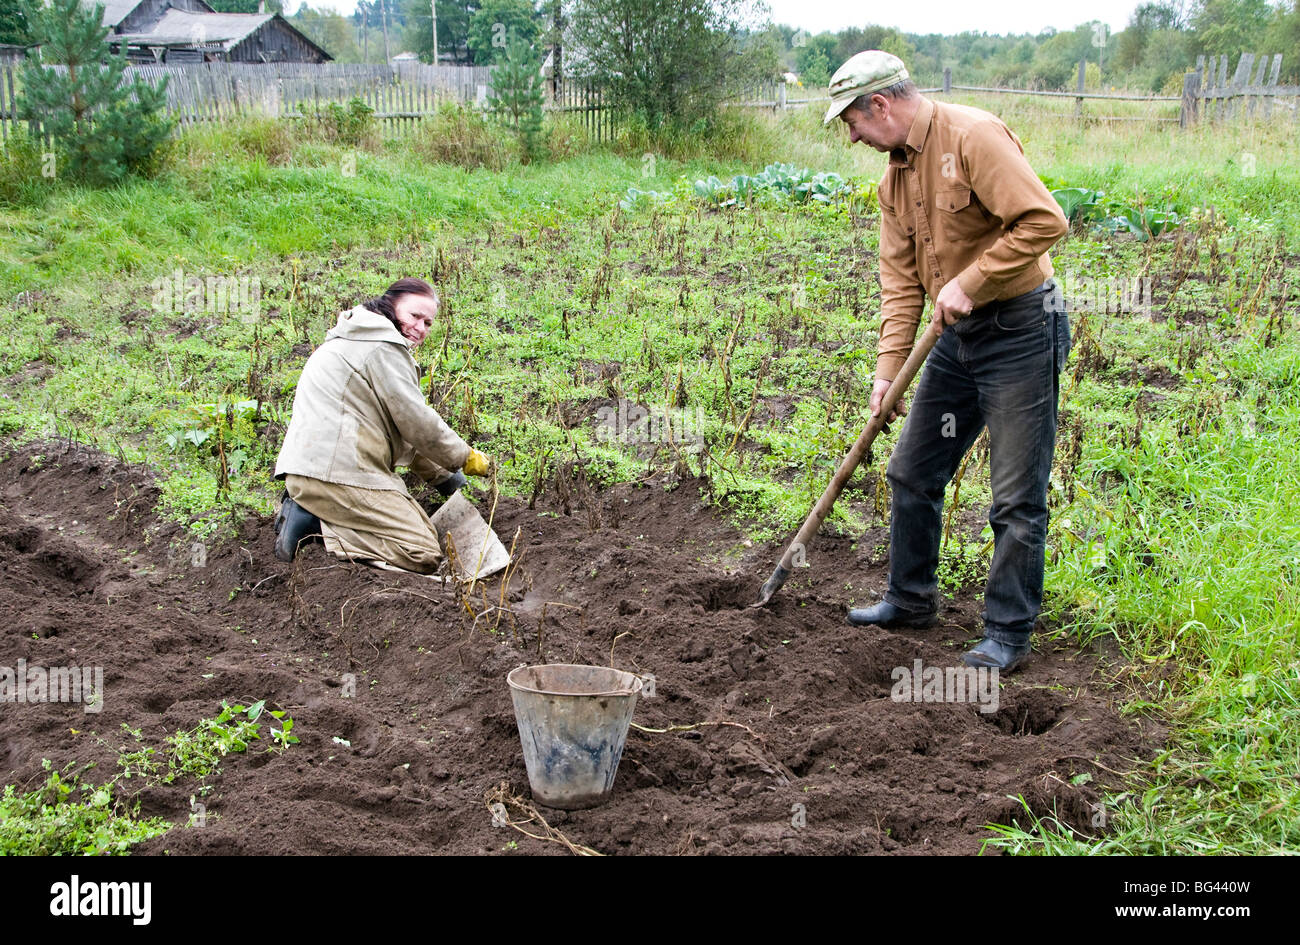 Harvesting potatoes on dacha's land, Somino village, Leningrad region, Russia - Stock Image